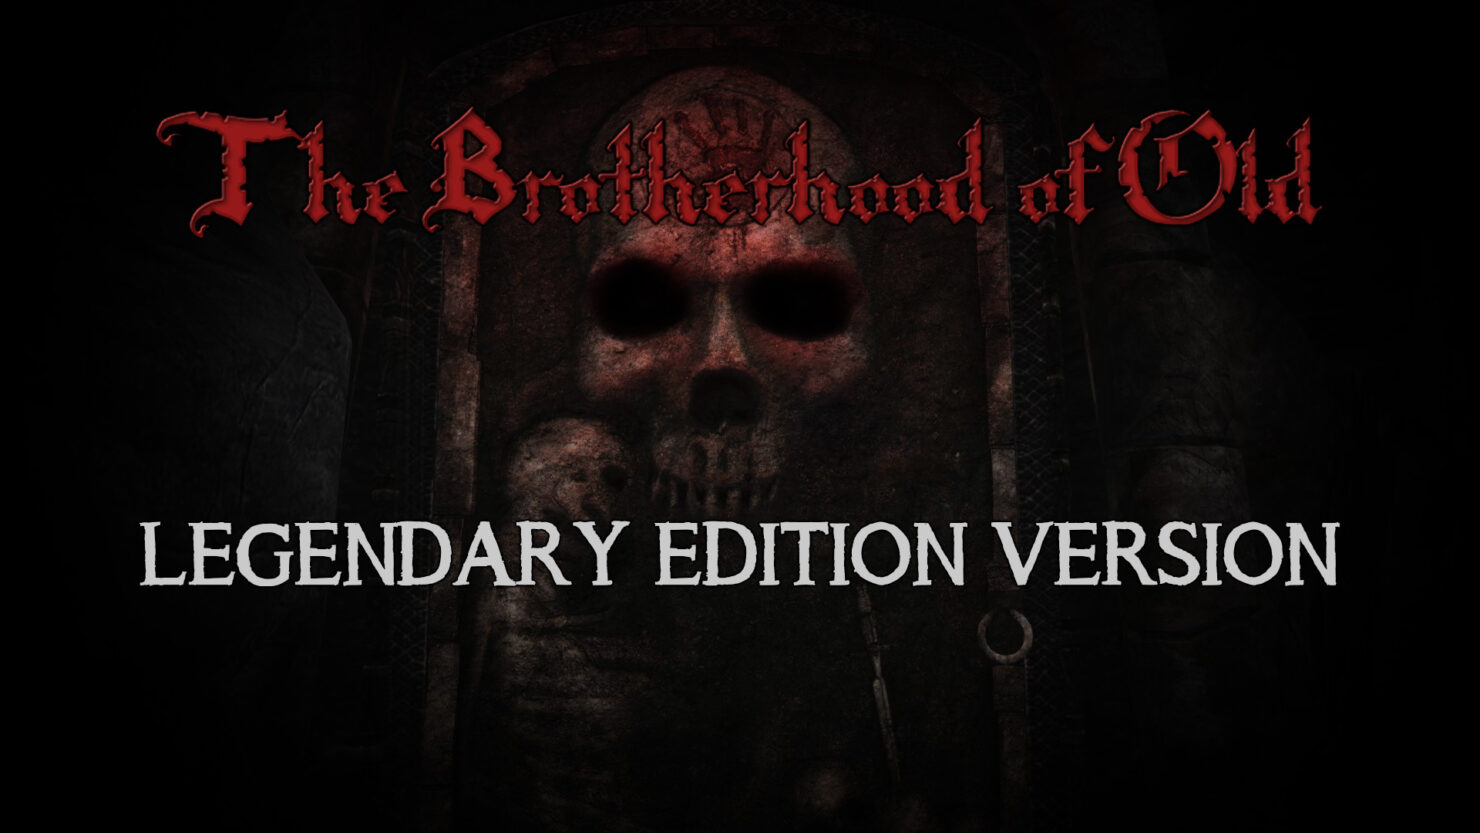 Skyrim The Brotherhood of Old Quest Mod